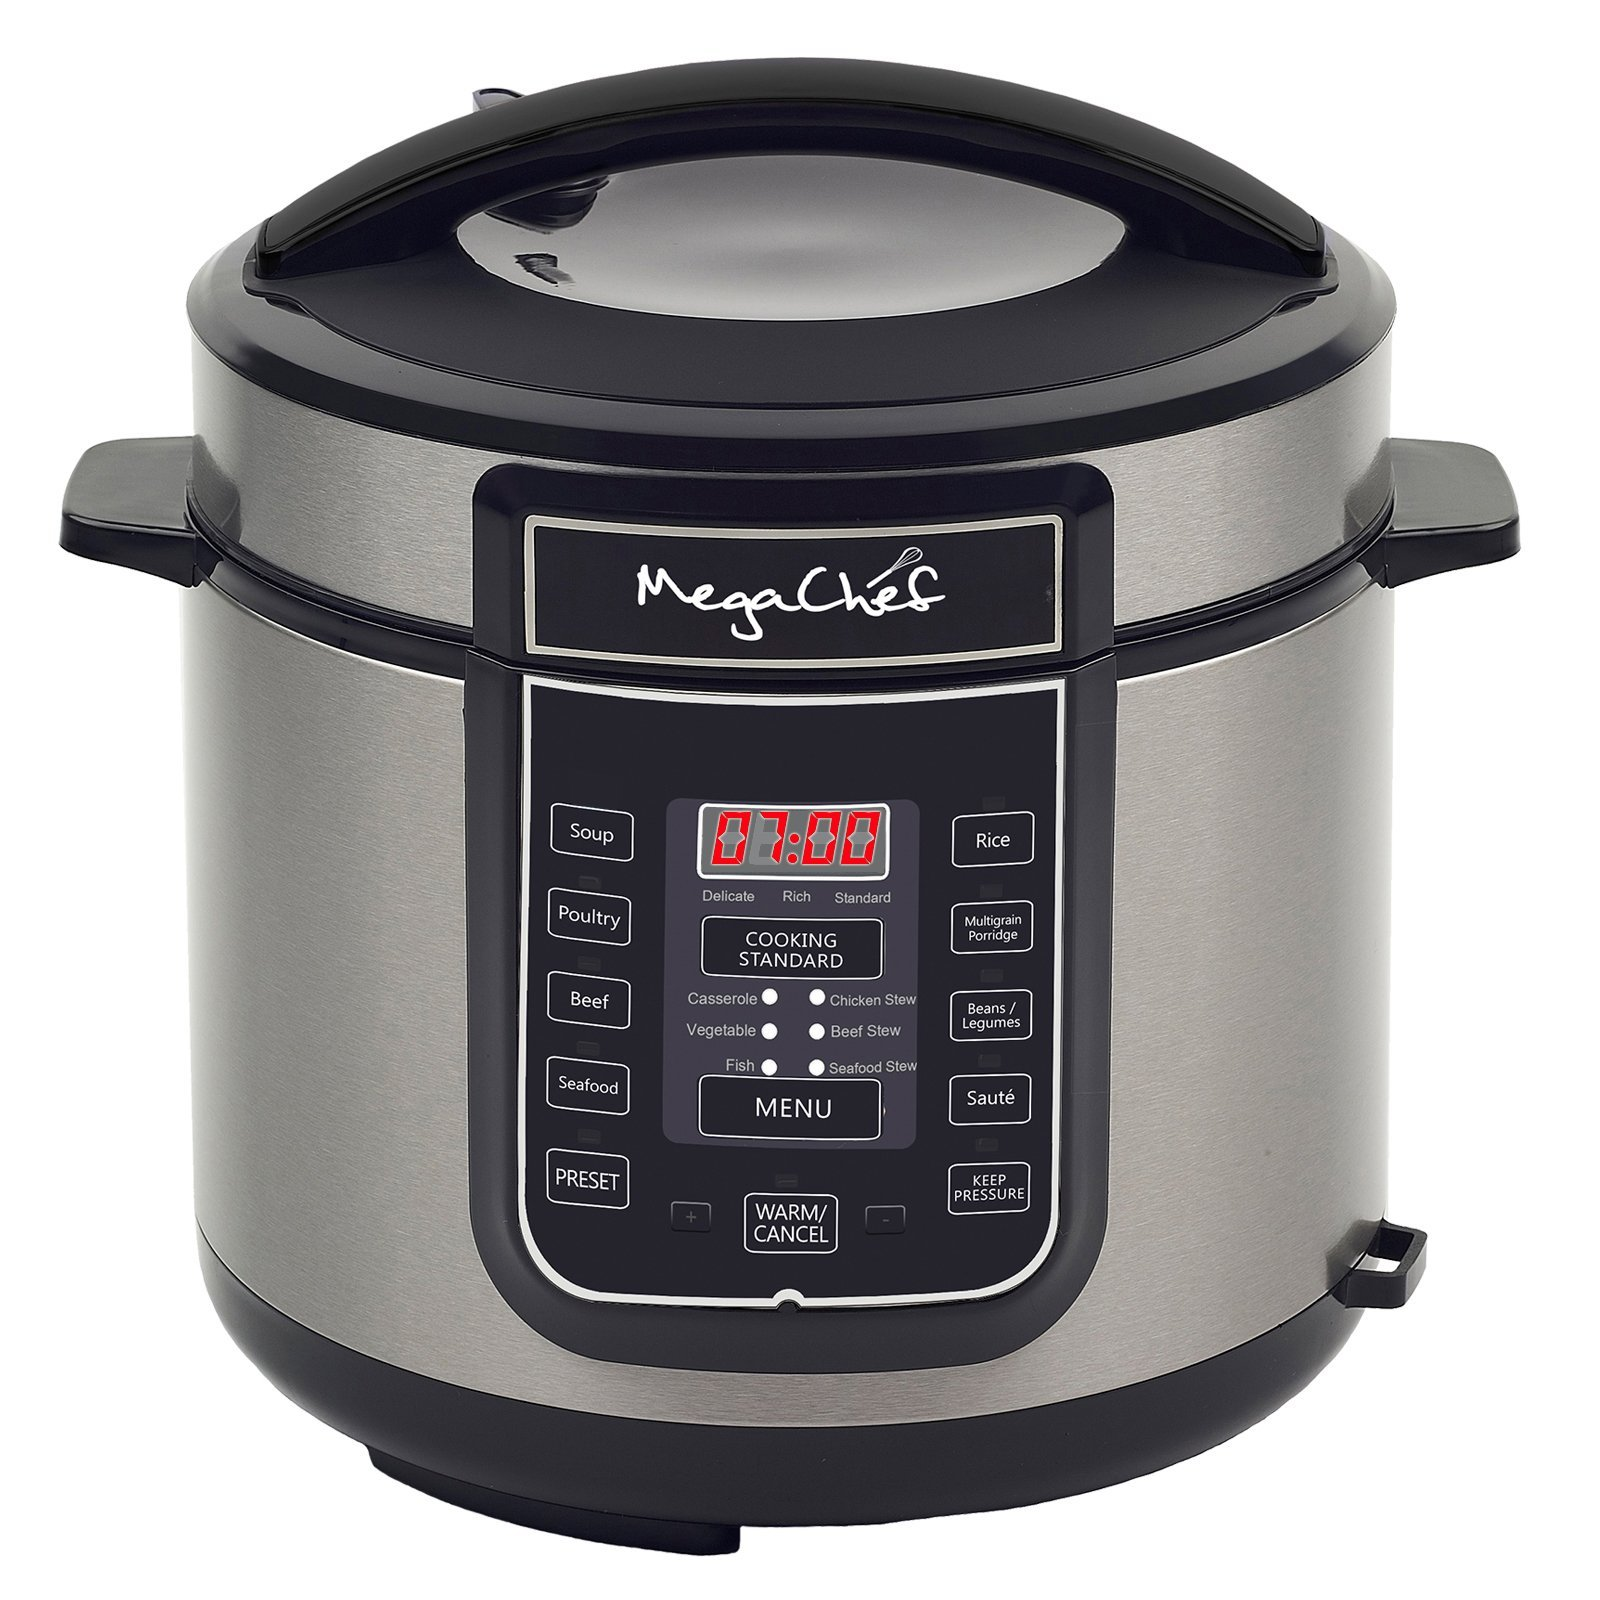 MegaChef Digital Pressure Cooker with 14 Pre-Set Multi Function Features, 6 quart